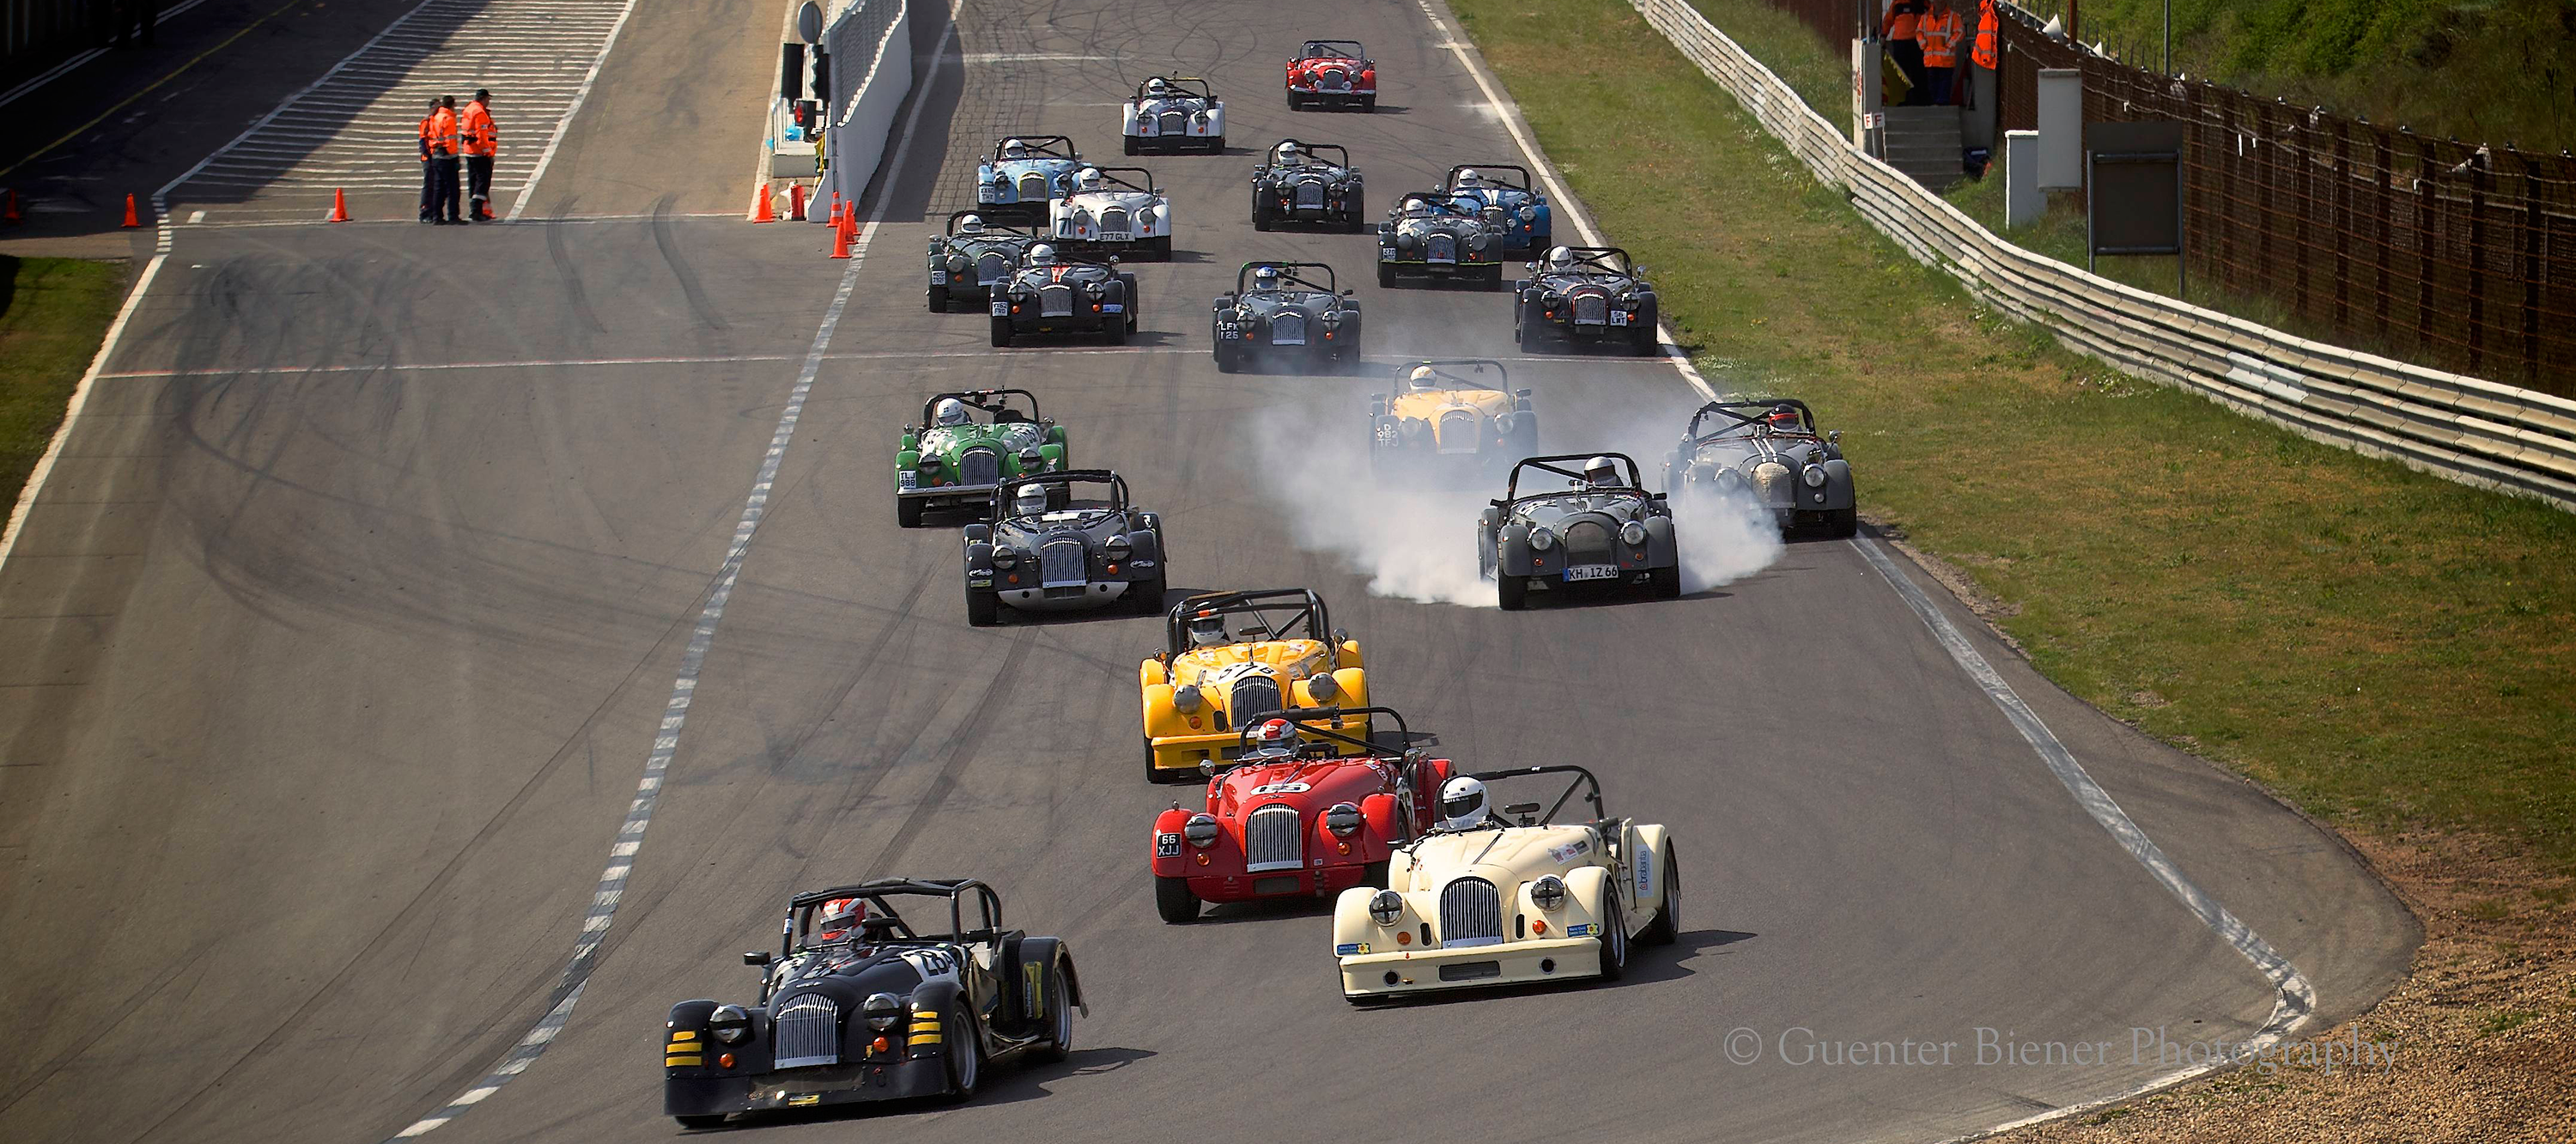 Morgan Challenge competitors having fun at Zandvoort in Holland